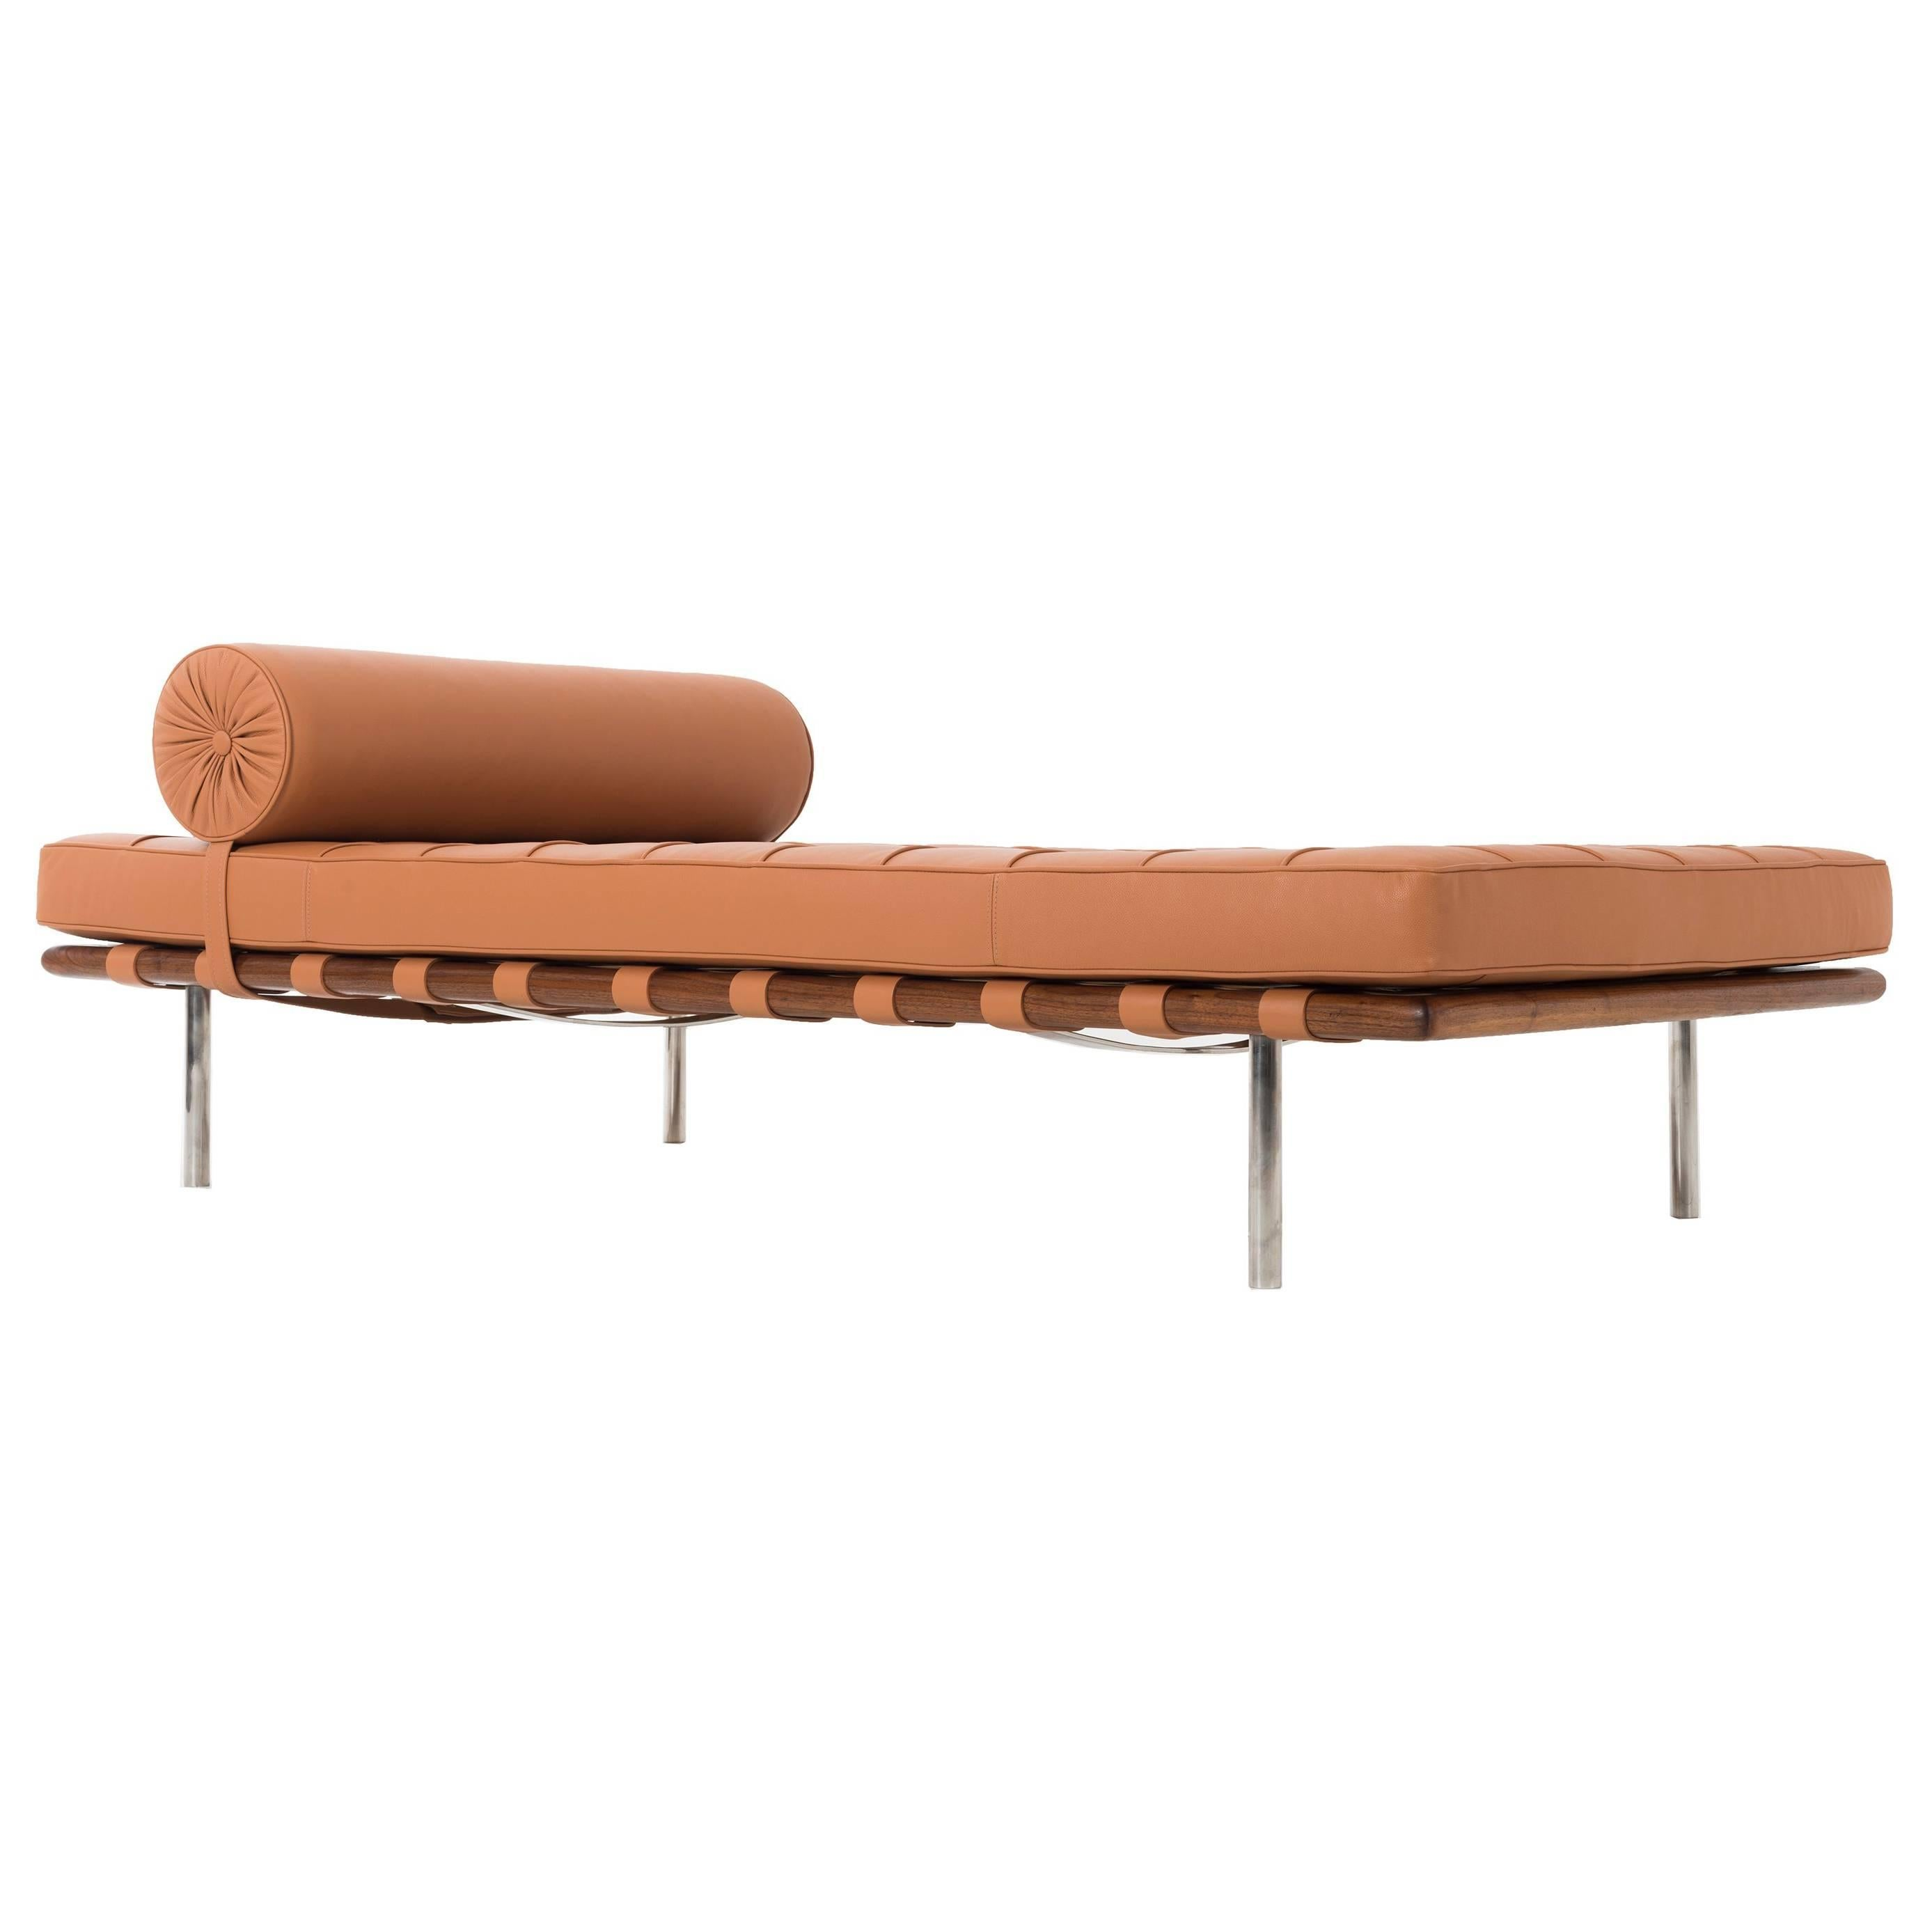 Barcelona Daybed Mies Van Der Rohe Barcelona Daybed